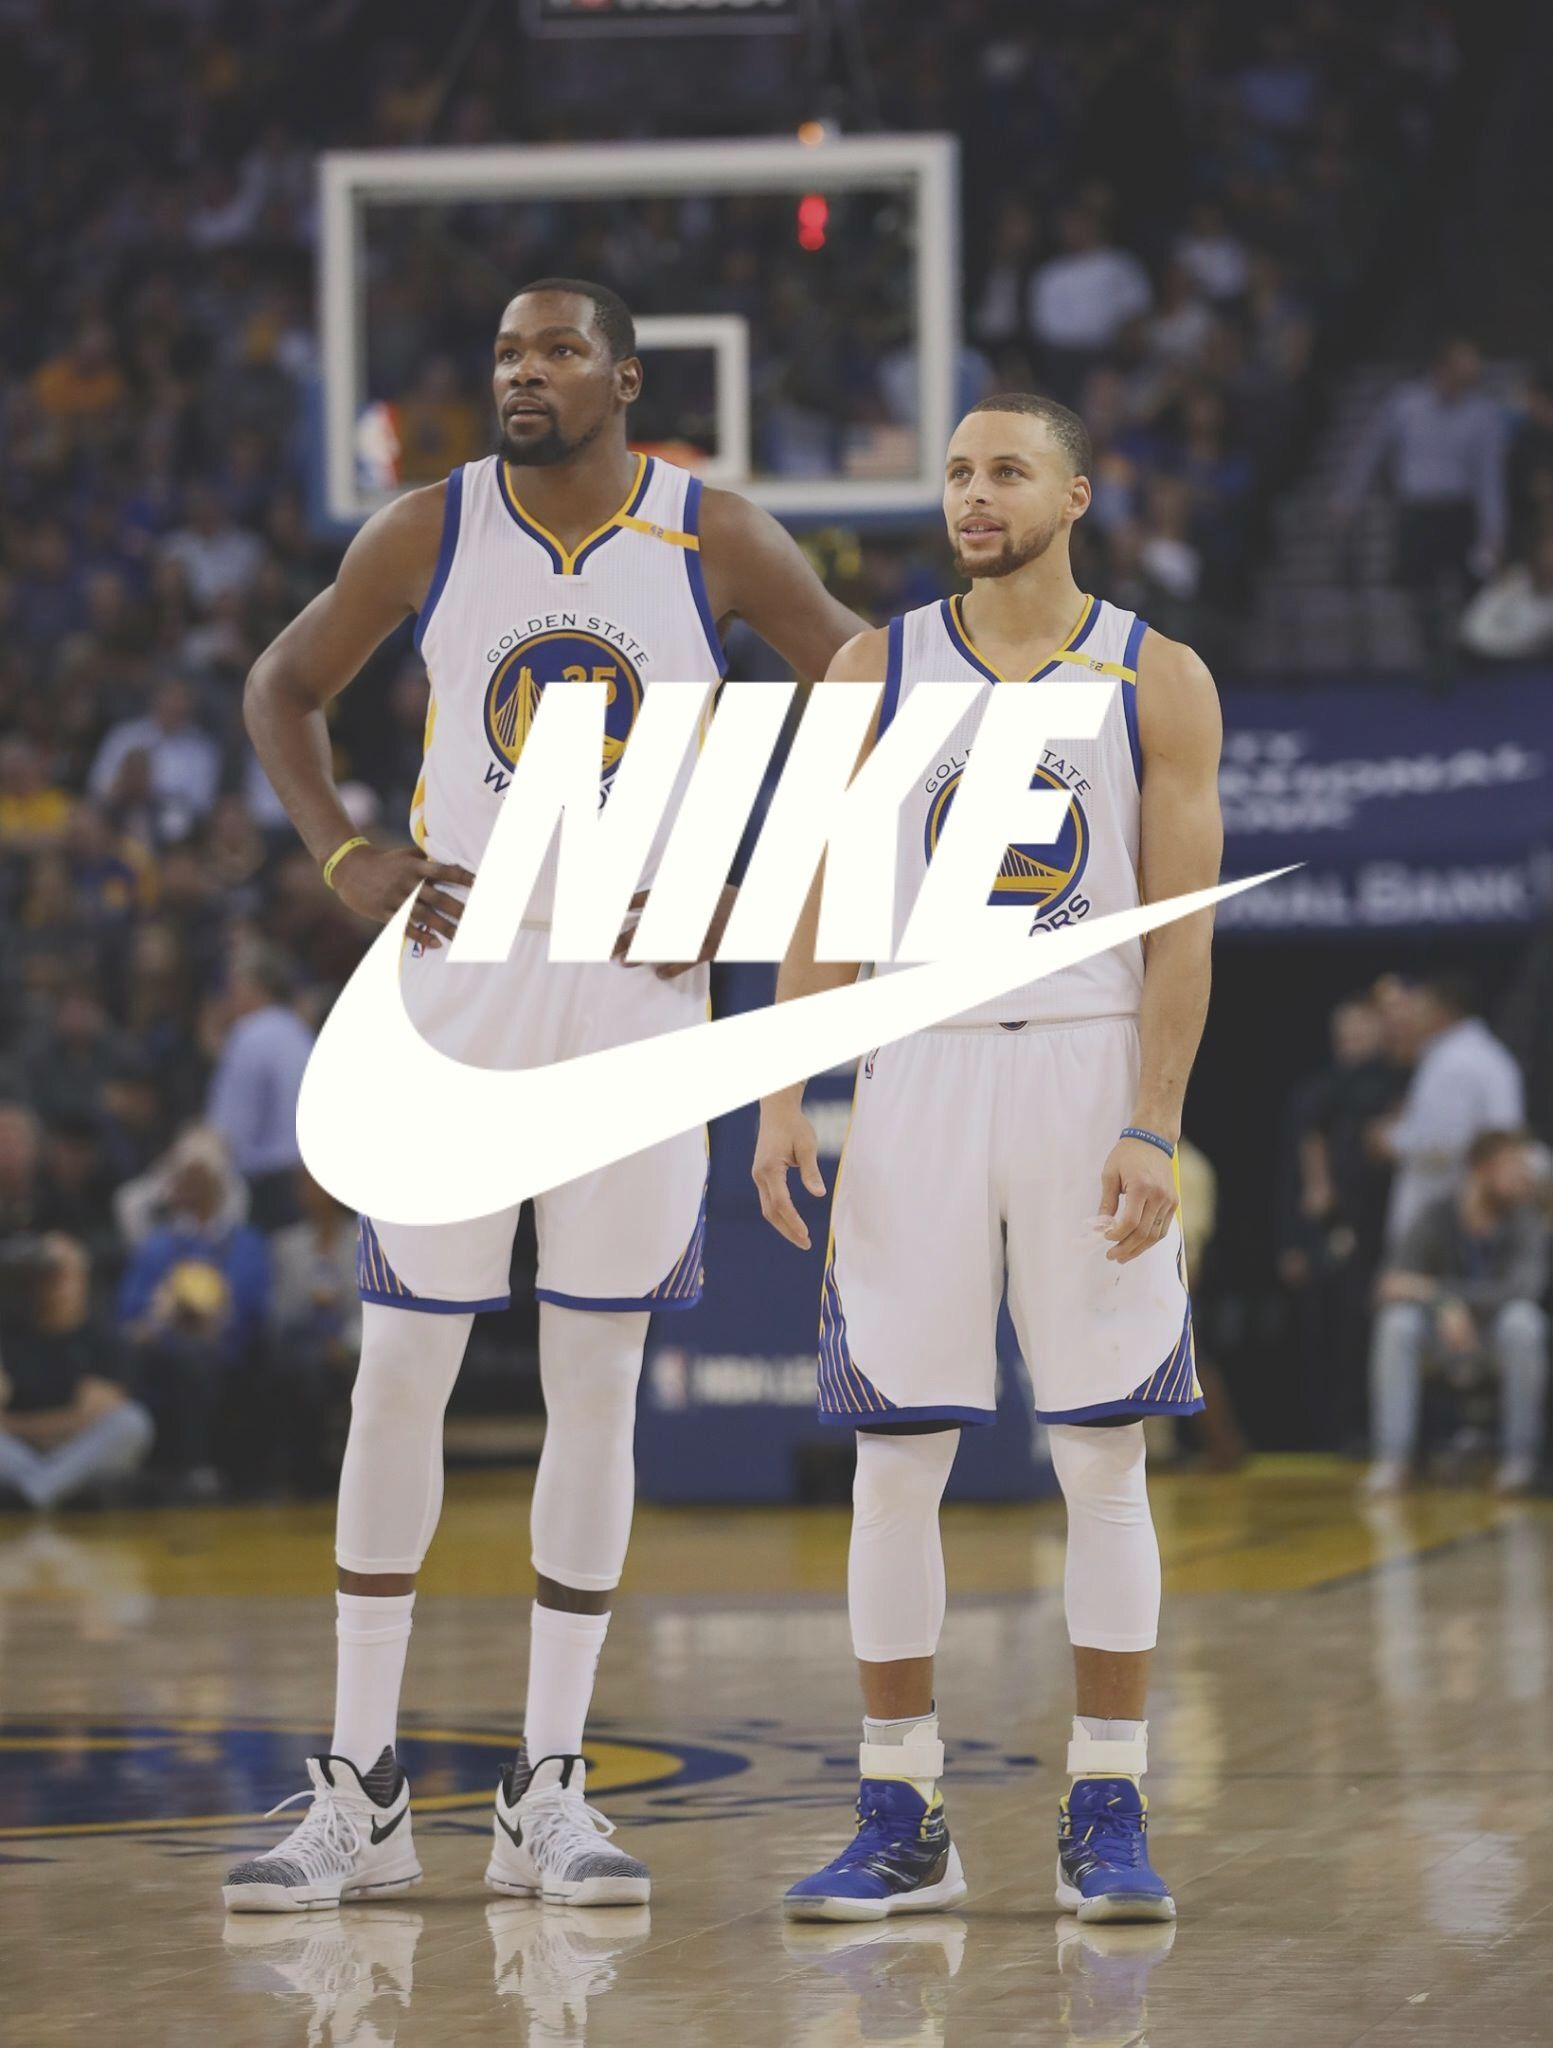 Nike Wallpaper Kevin Durant Stephen Curry Nike Wallpaper Stephen Curry Sports Basketball